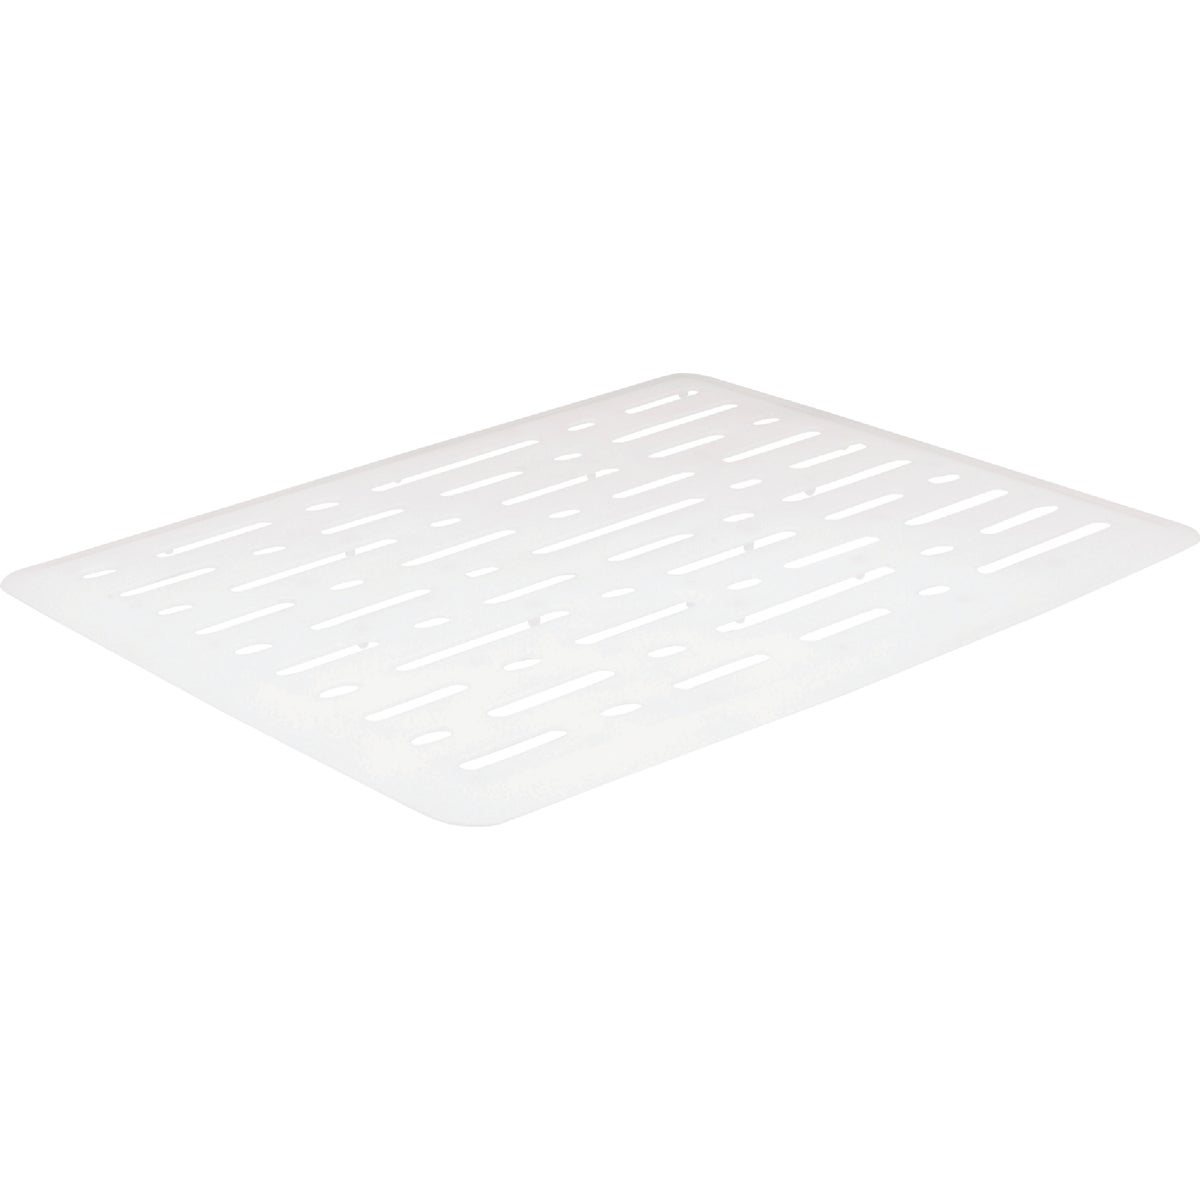 WHITE SMALL SINK MAT - 1G1706WHT by Rubbermaid Home